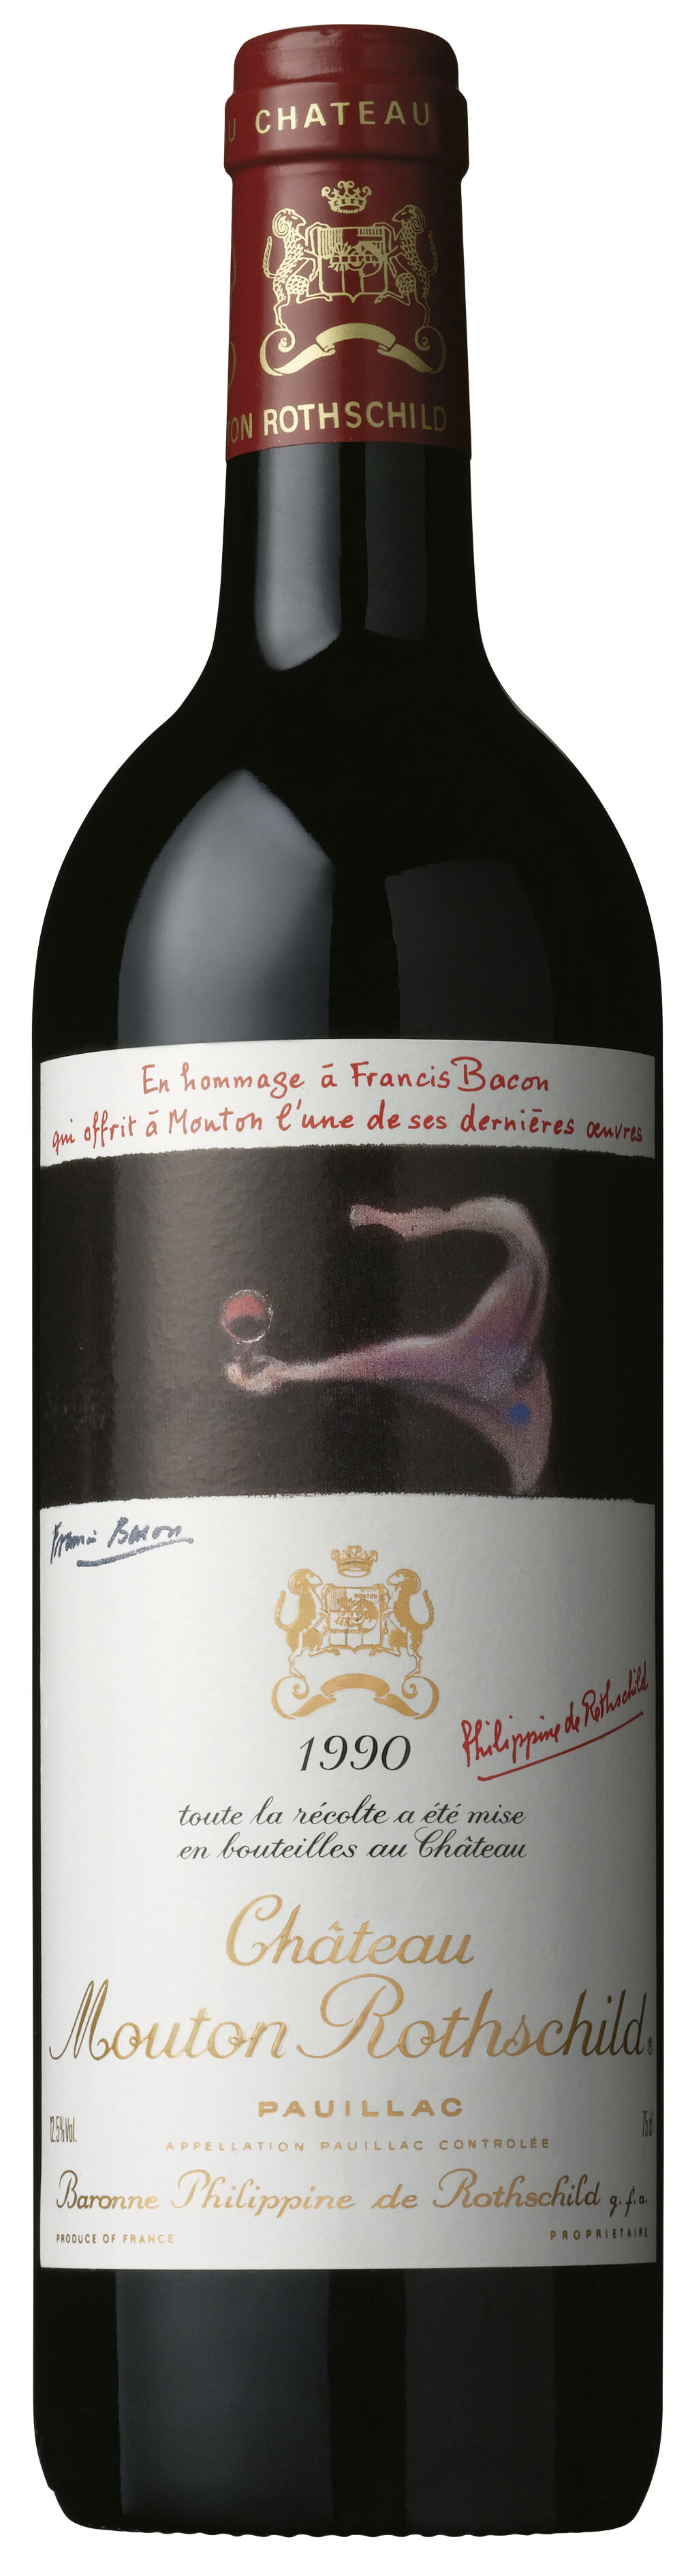 Francis Bacon designed wine label for Château Mouton Rothschild. Image courtesy of Château Mouton Rothschild.